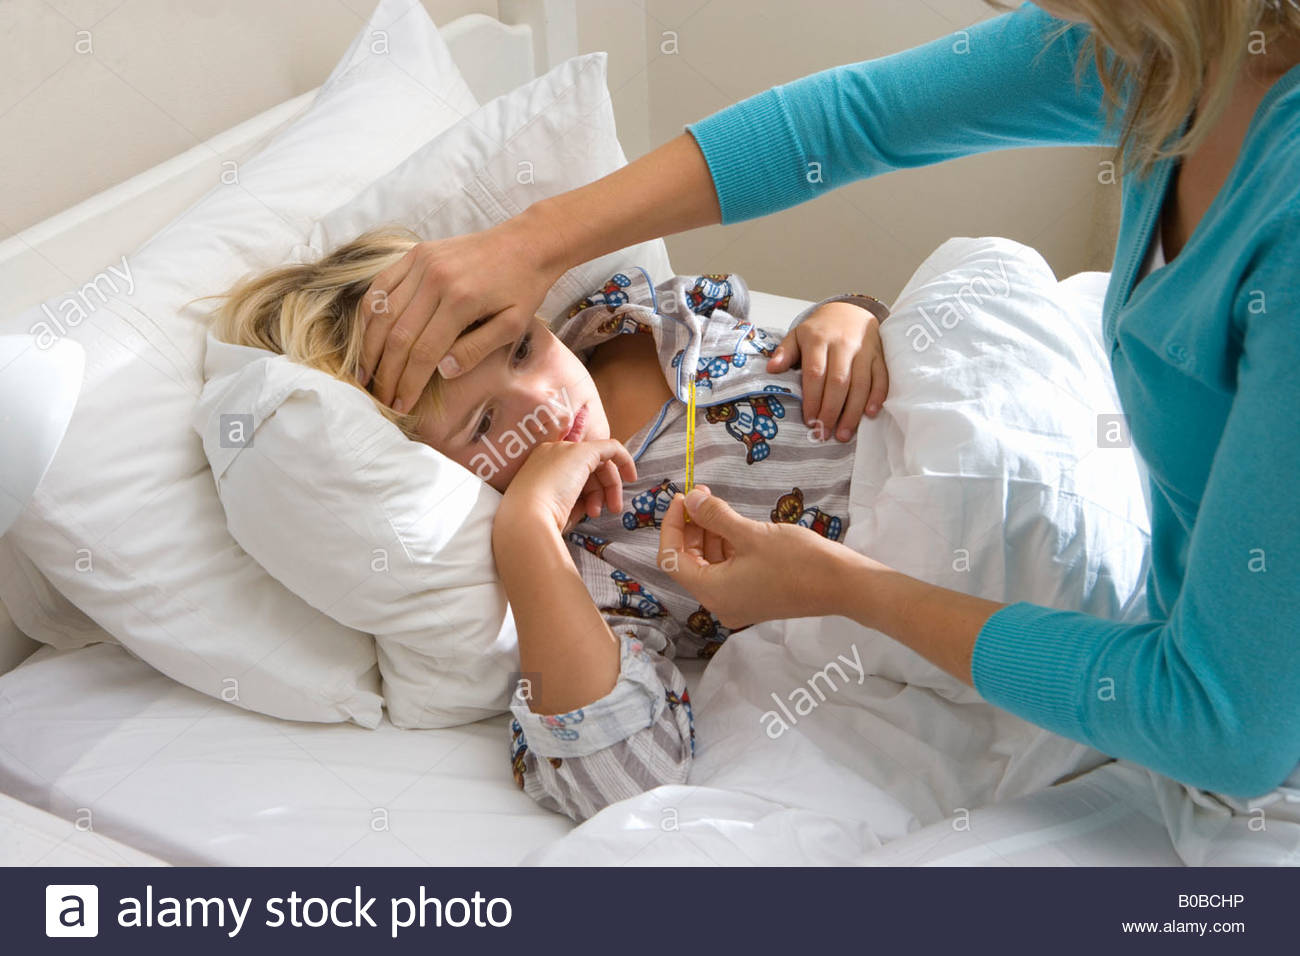 Mother taking daughter's  temperature, close-up - Stock Image